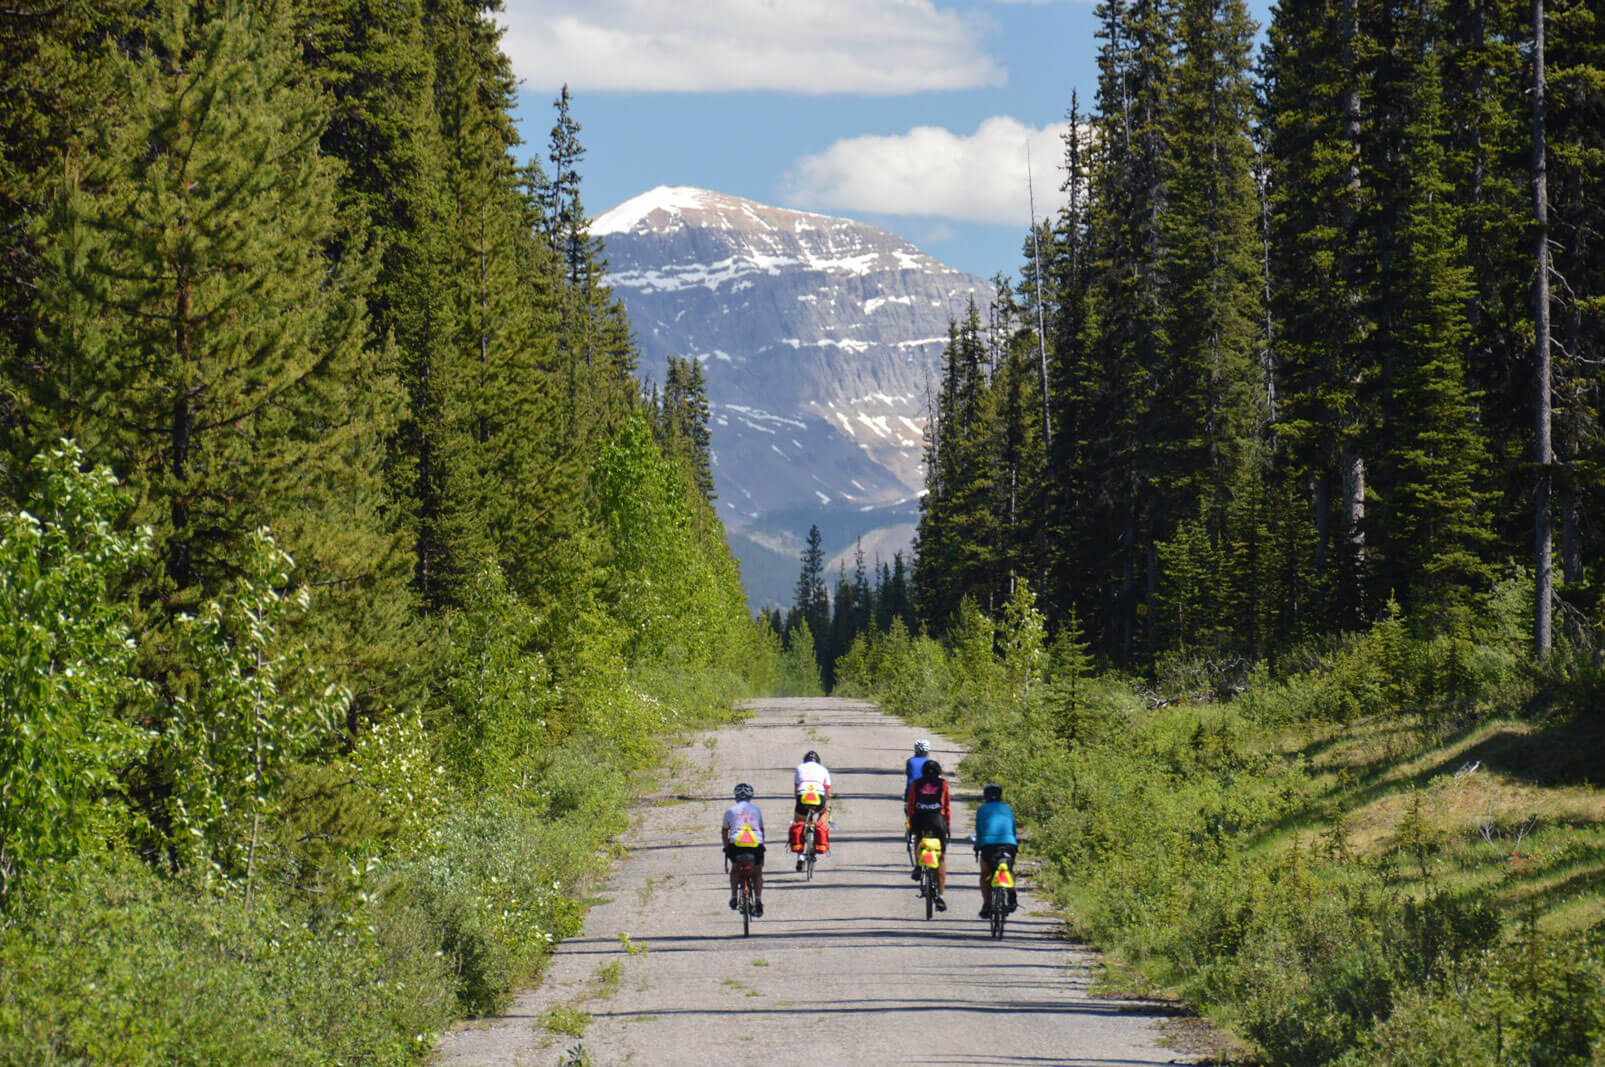 Cycling across Canada, riding to Banff Alberta